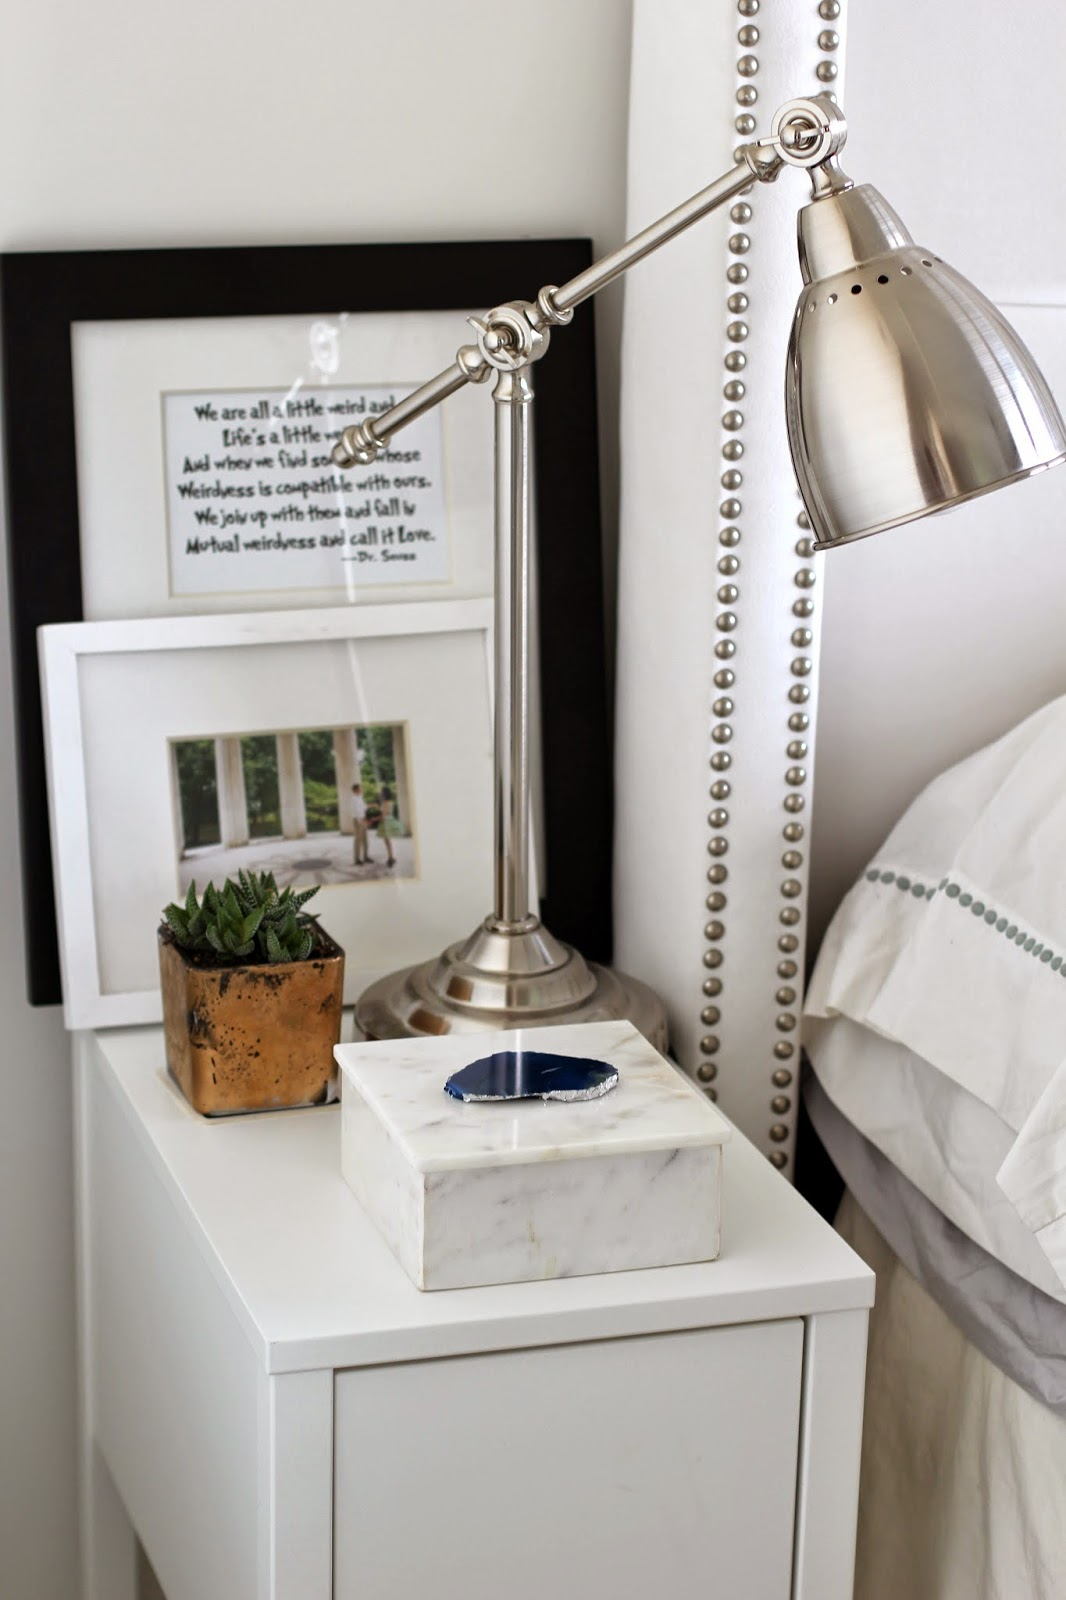 Itu0027s Amazing How Adding A Few Small Home Accessories Can Completely Change  Or Upgrade Any Room. Check Out All The New Home Pieces I #FabFound At  Marshalls.